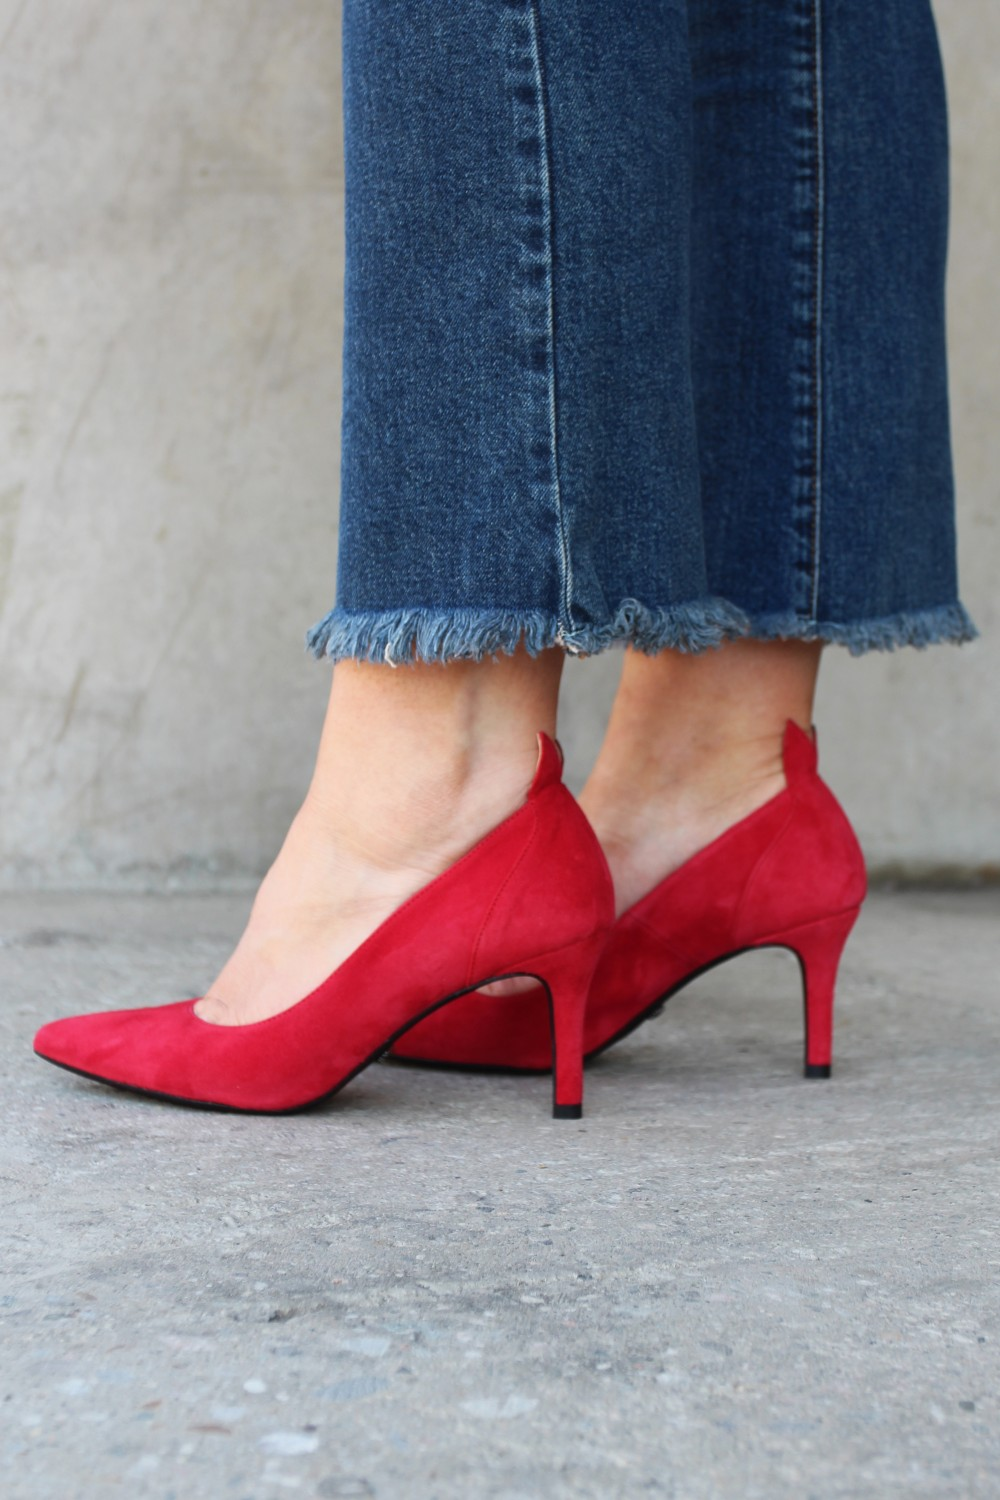 Front Society Shoes Red Pumps